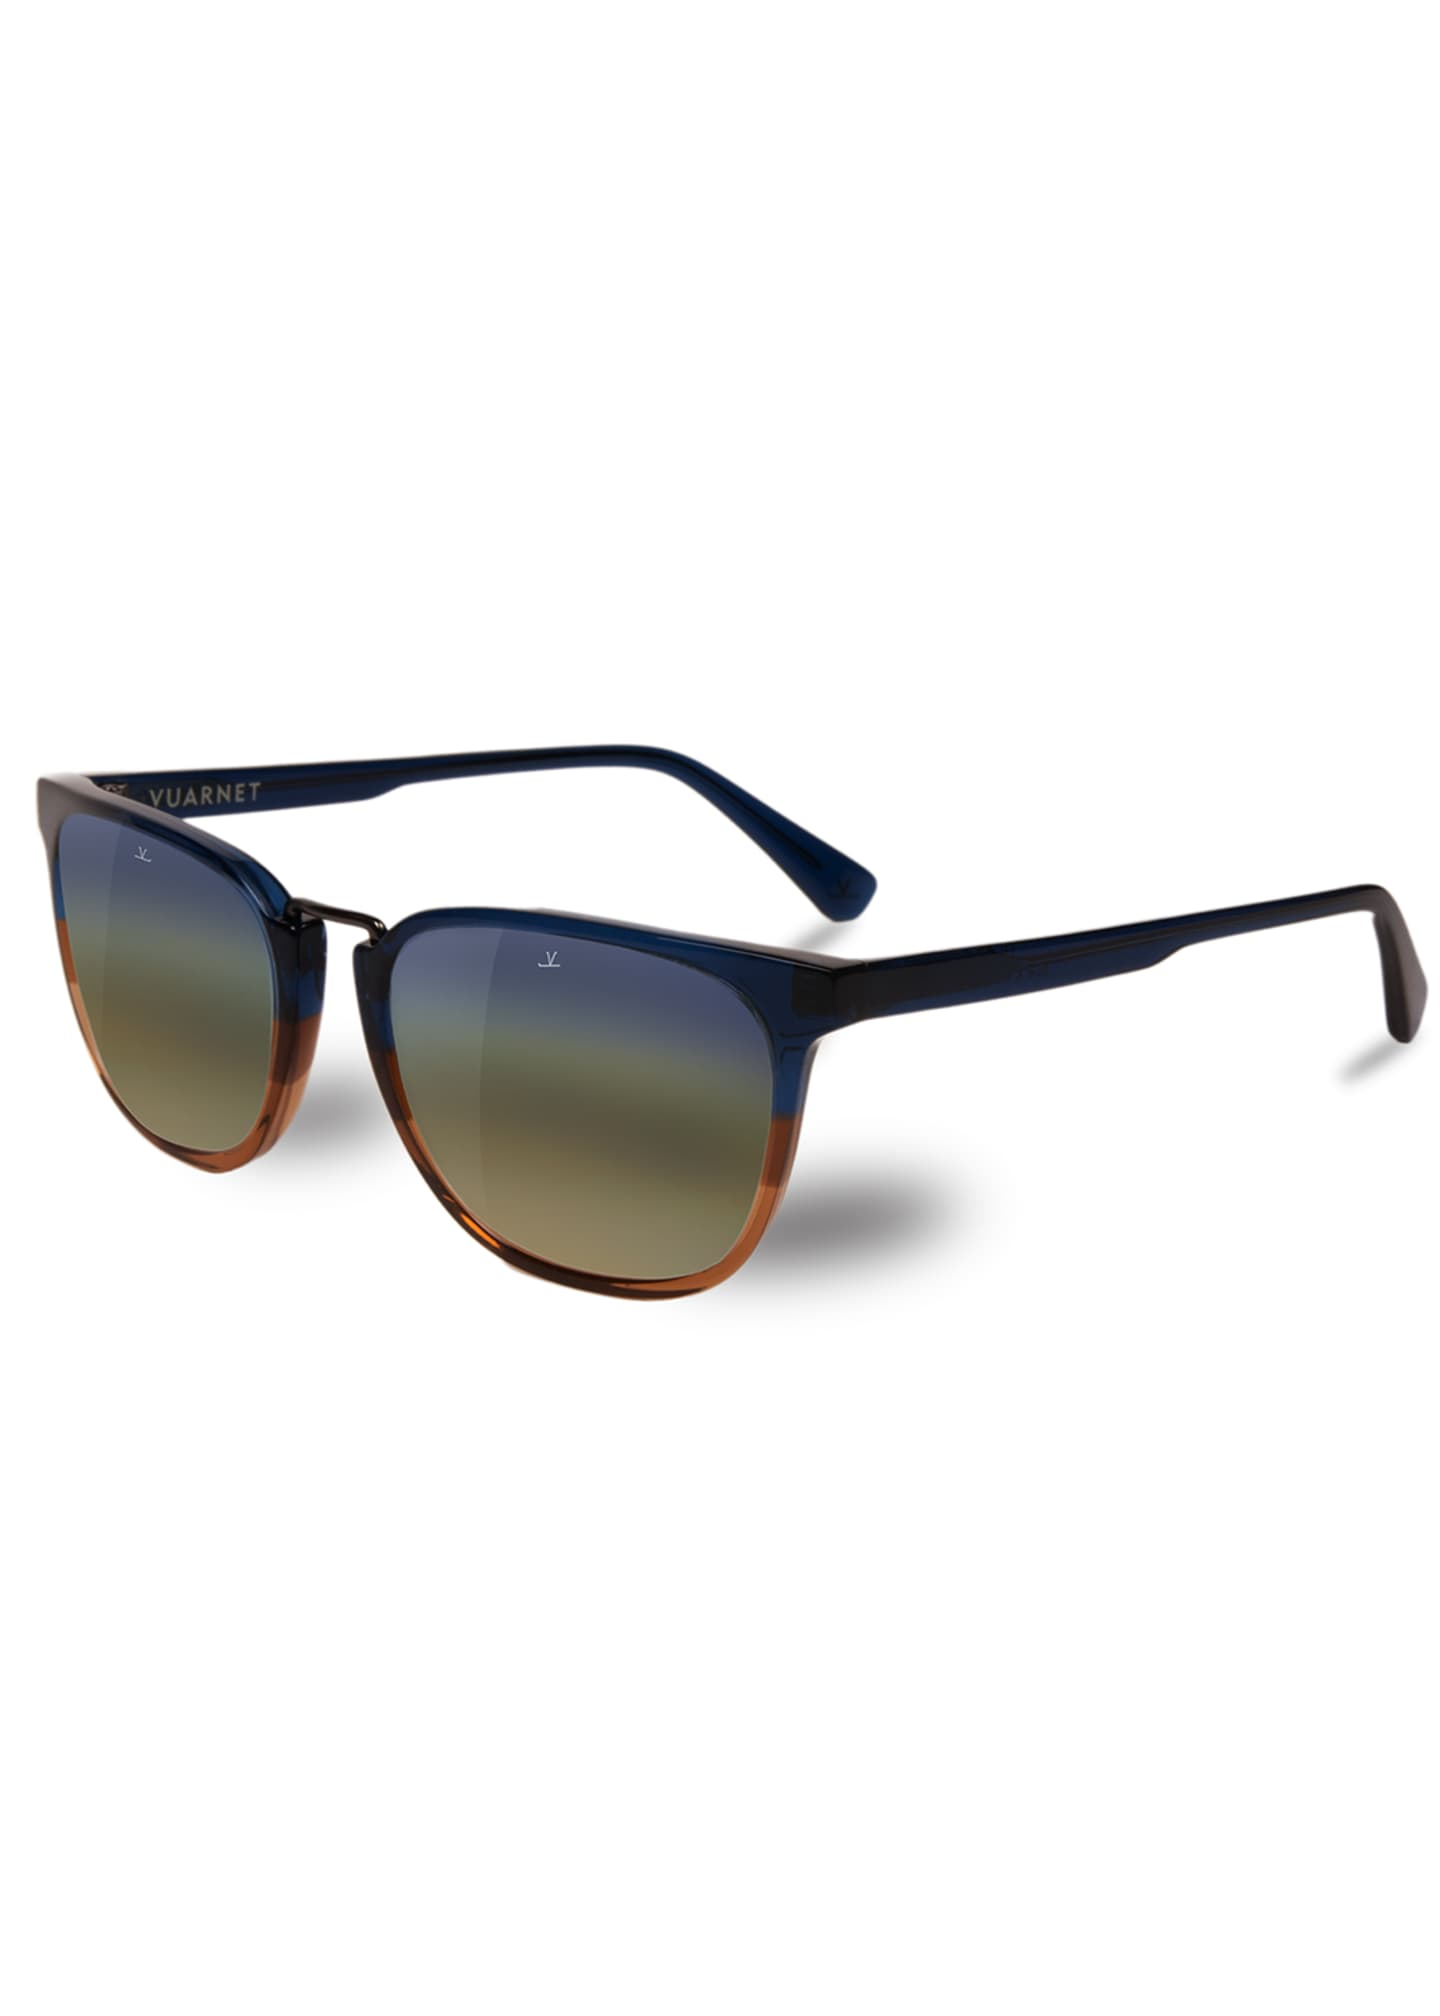 Vuarnet Men's Cable Car Square Flash Stainless Steel/Acetate